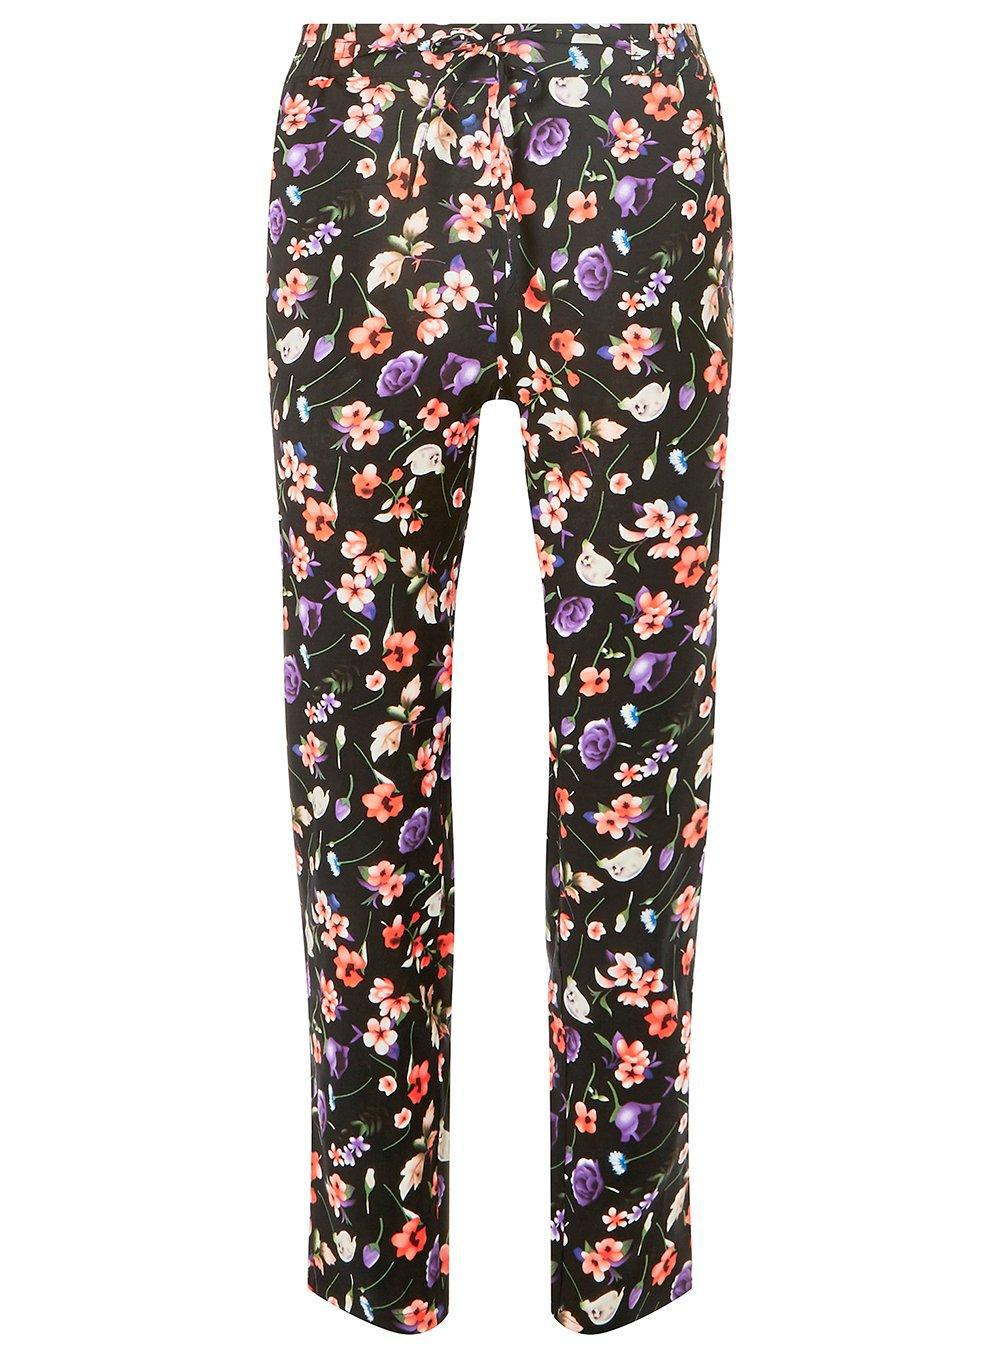 Dorothy Perkins Womens **Vero Moda Multi Coloured Floral Print Joggers Sale Limited Edition Cheap Low Price Drop Shipping High Quality LeM40T2kIY